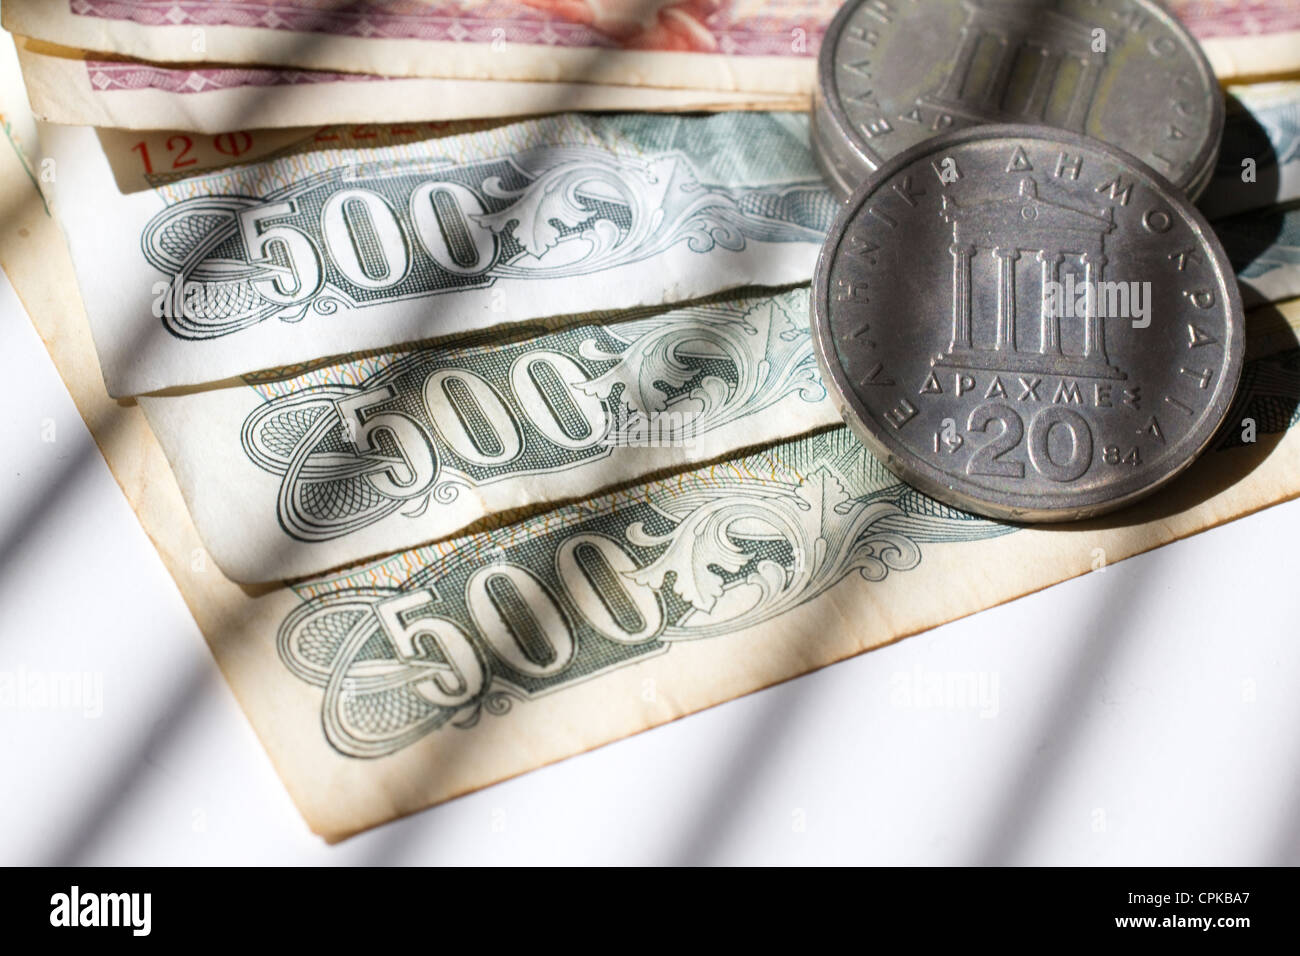 currency drachma drachmas money cash Drachmas are the previous currency of greece - Stock Image